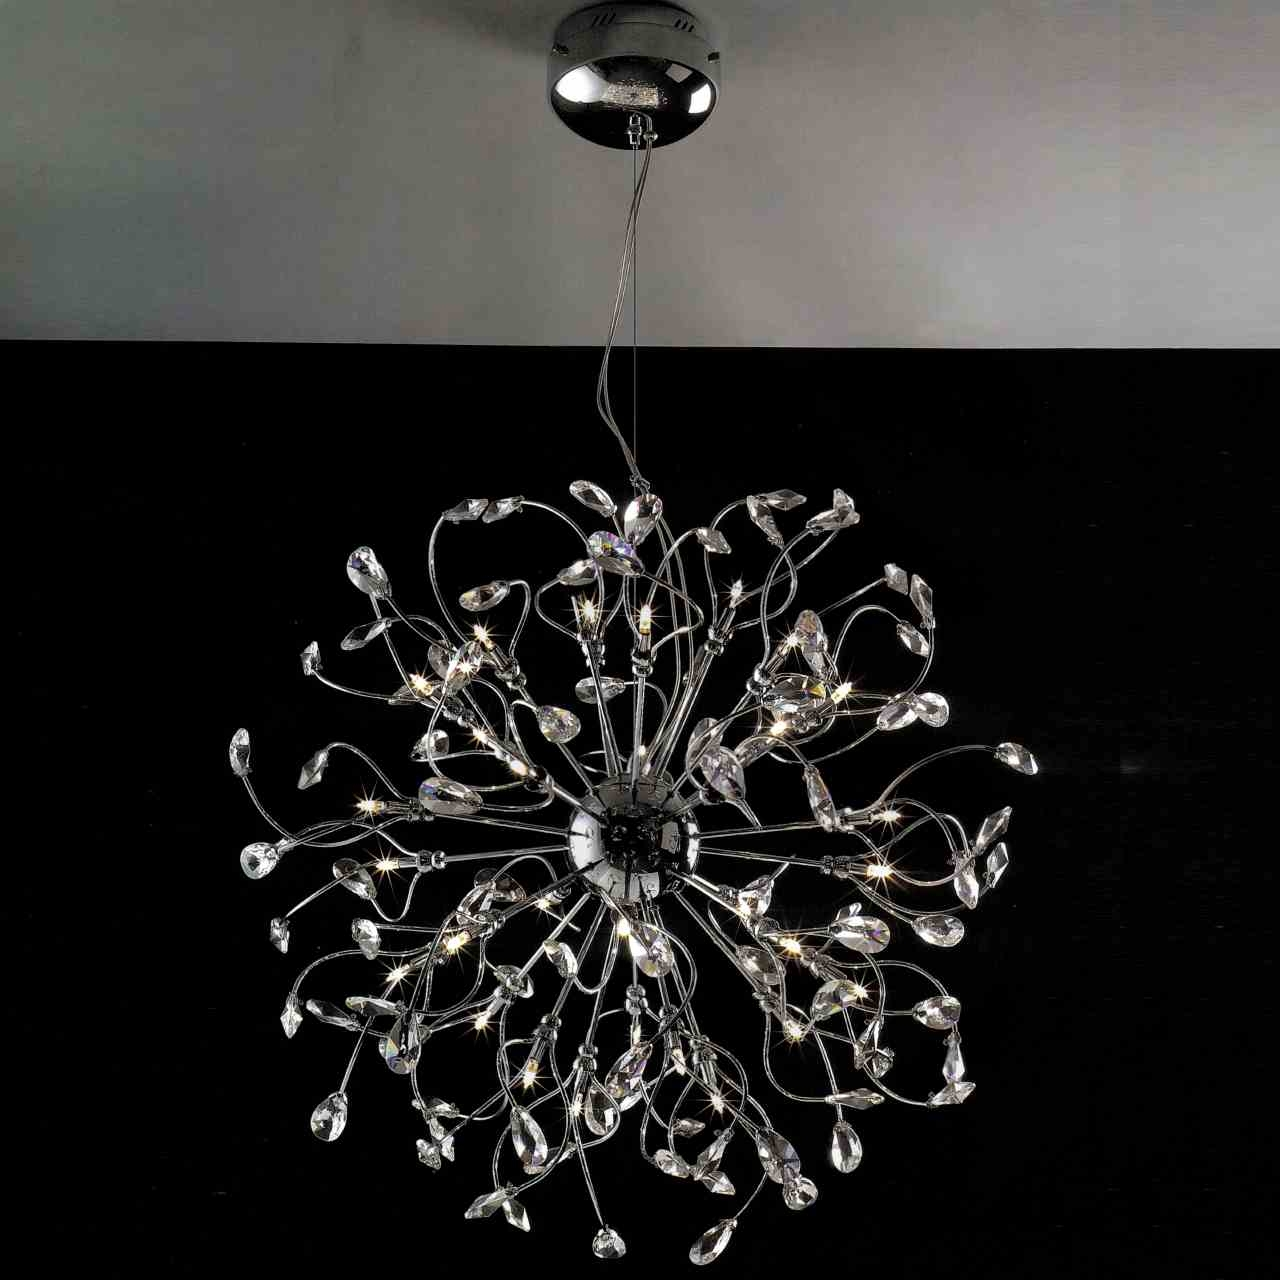 Brizzo Lighting Stores 22 Tempesta Modern Crystal Wall Sconce Throughout Modern Chrome Chandeliers (Image 4 of 15)